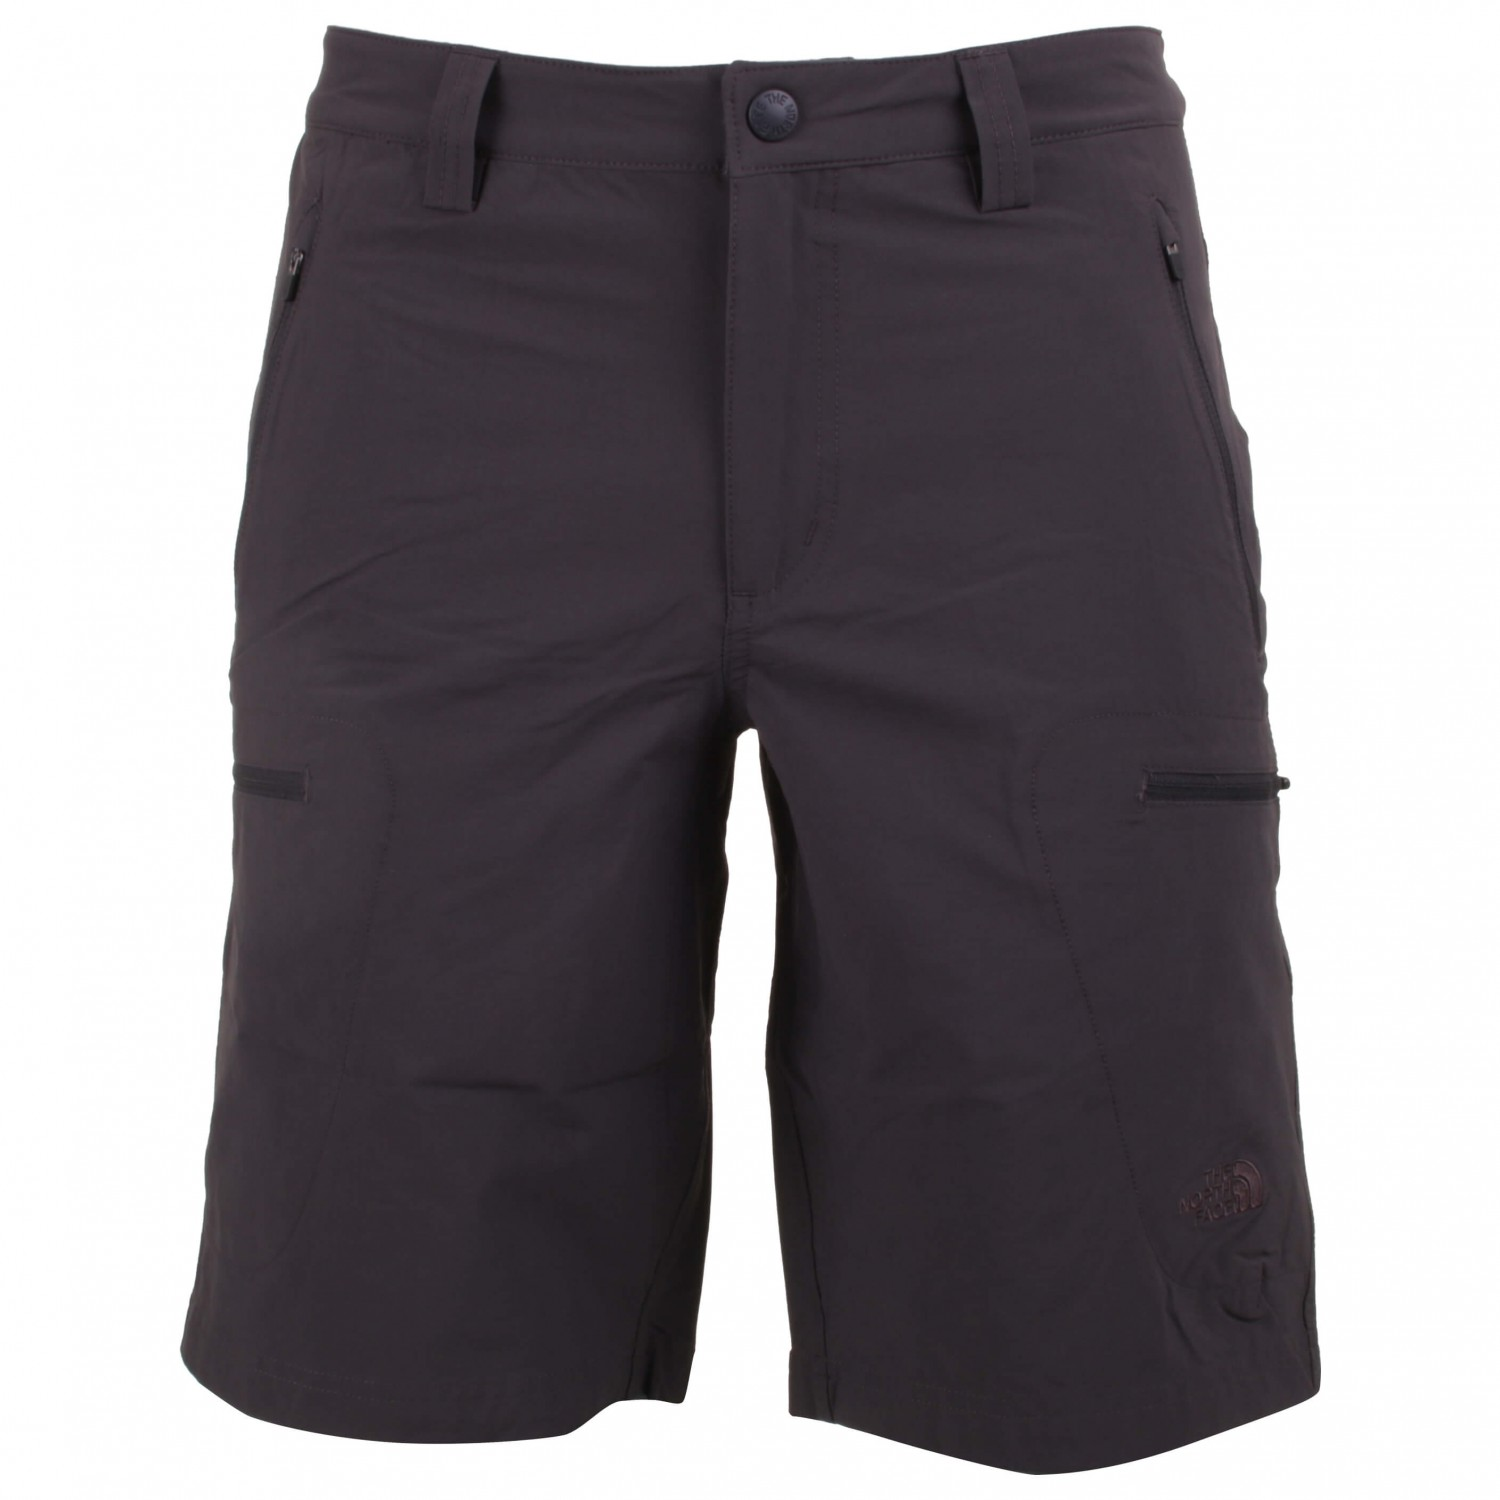 The North Face Exploration Short Shorts Asphalt Grey | 32 Regular (US)